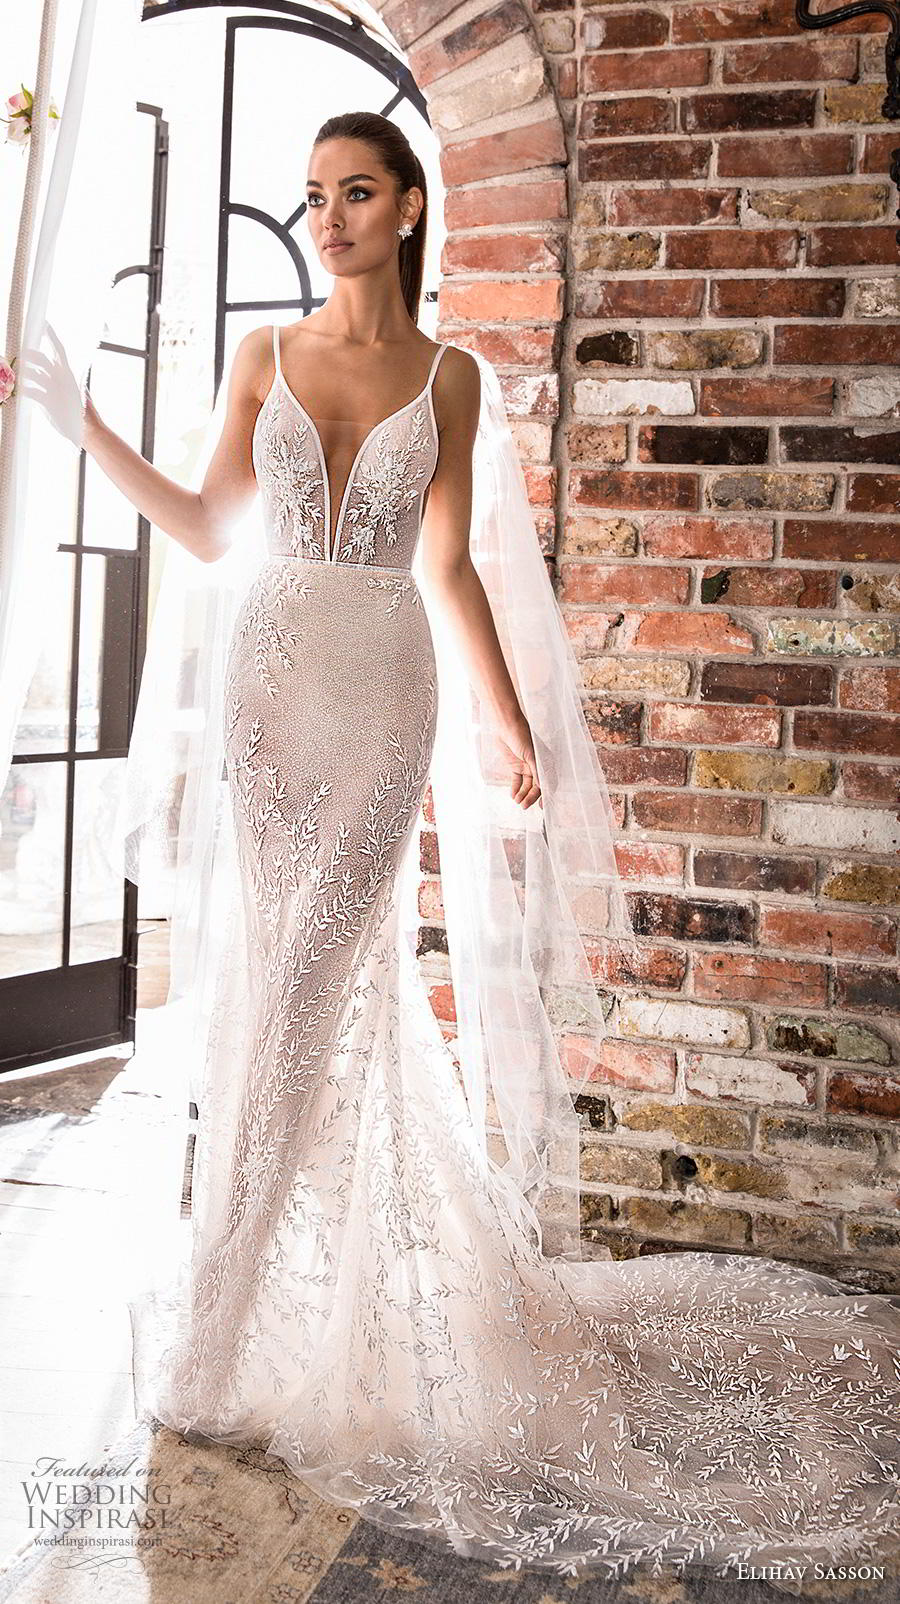 Get Inspired With These Wedding Dresses The Guardian Nigeria News Nigeria And World News Guardian Life The Guardian Nigeria News Nigeria And World News